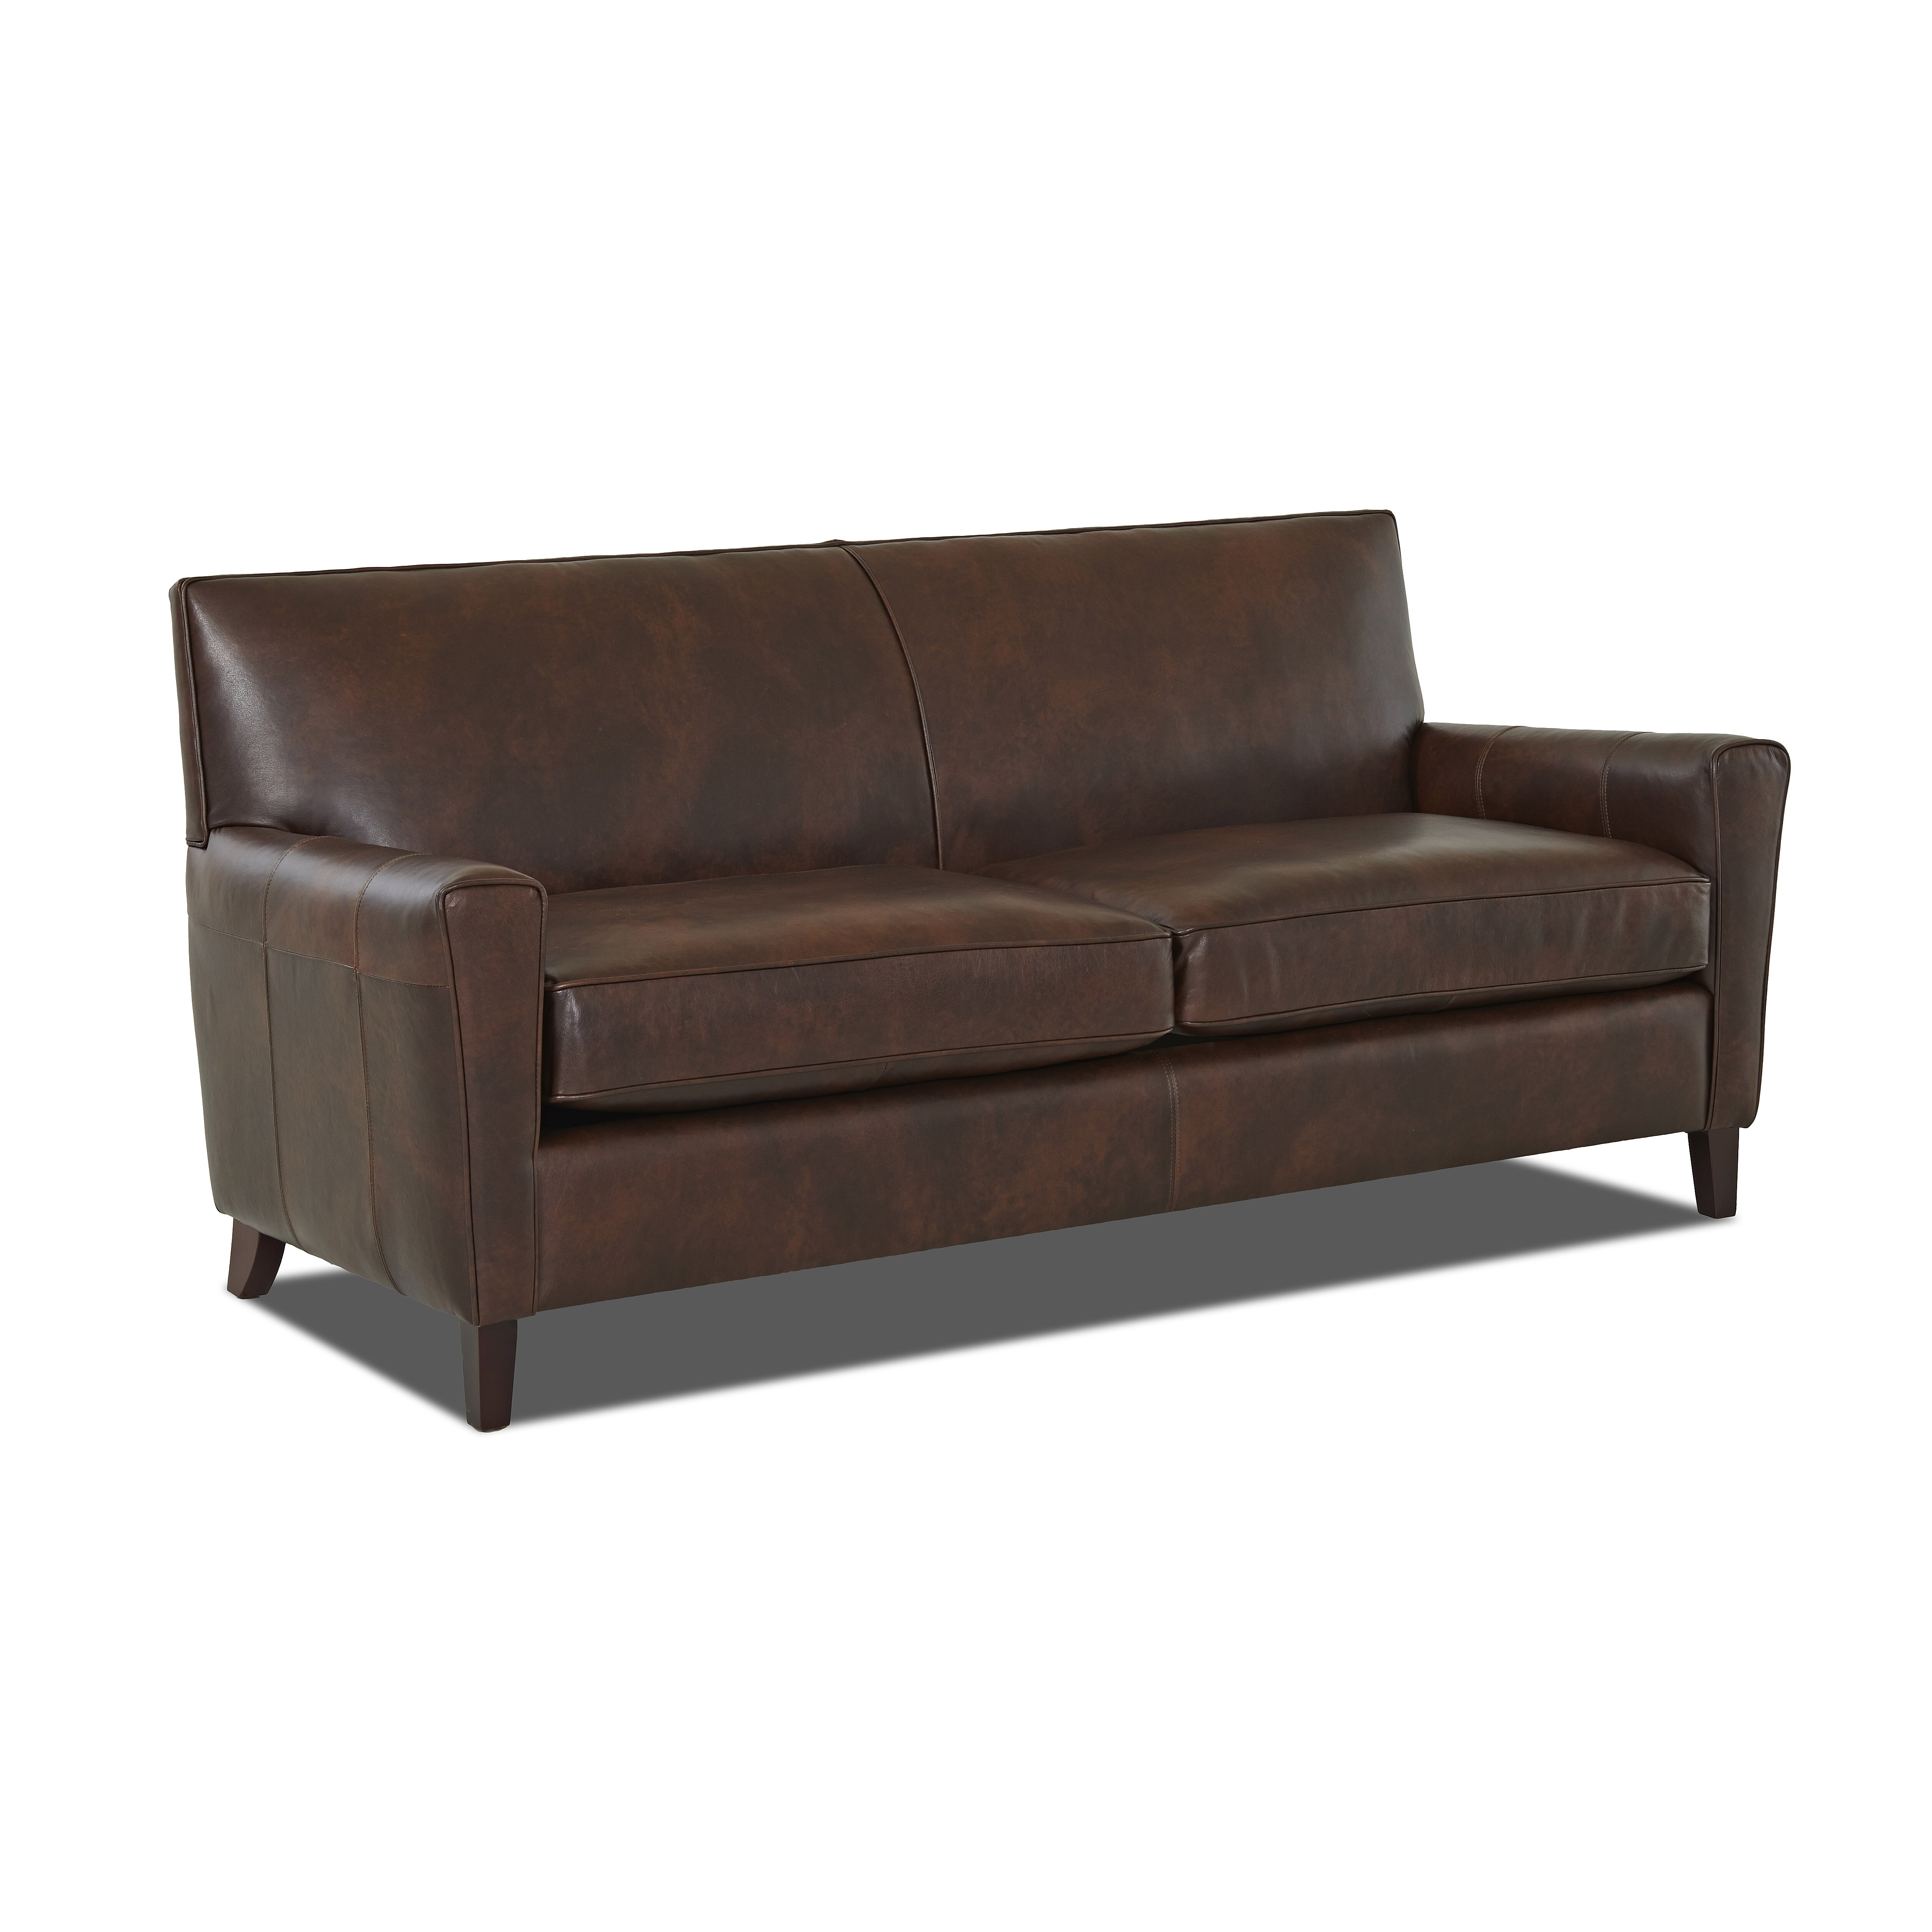 wayfair custom upholstery grayson leather sofa reviews With leather sectional sofa wayfair